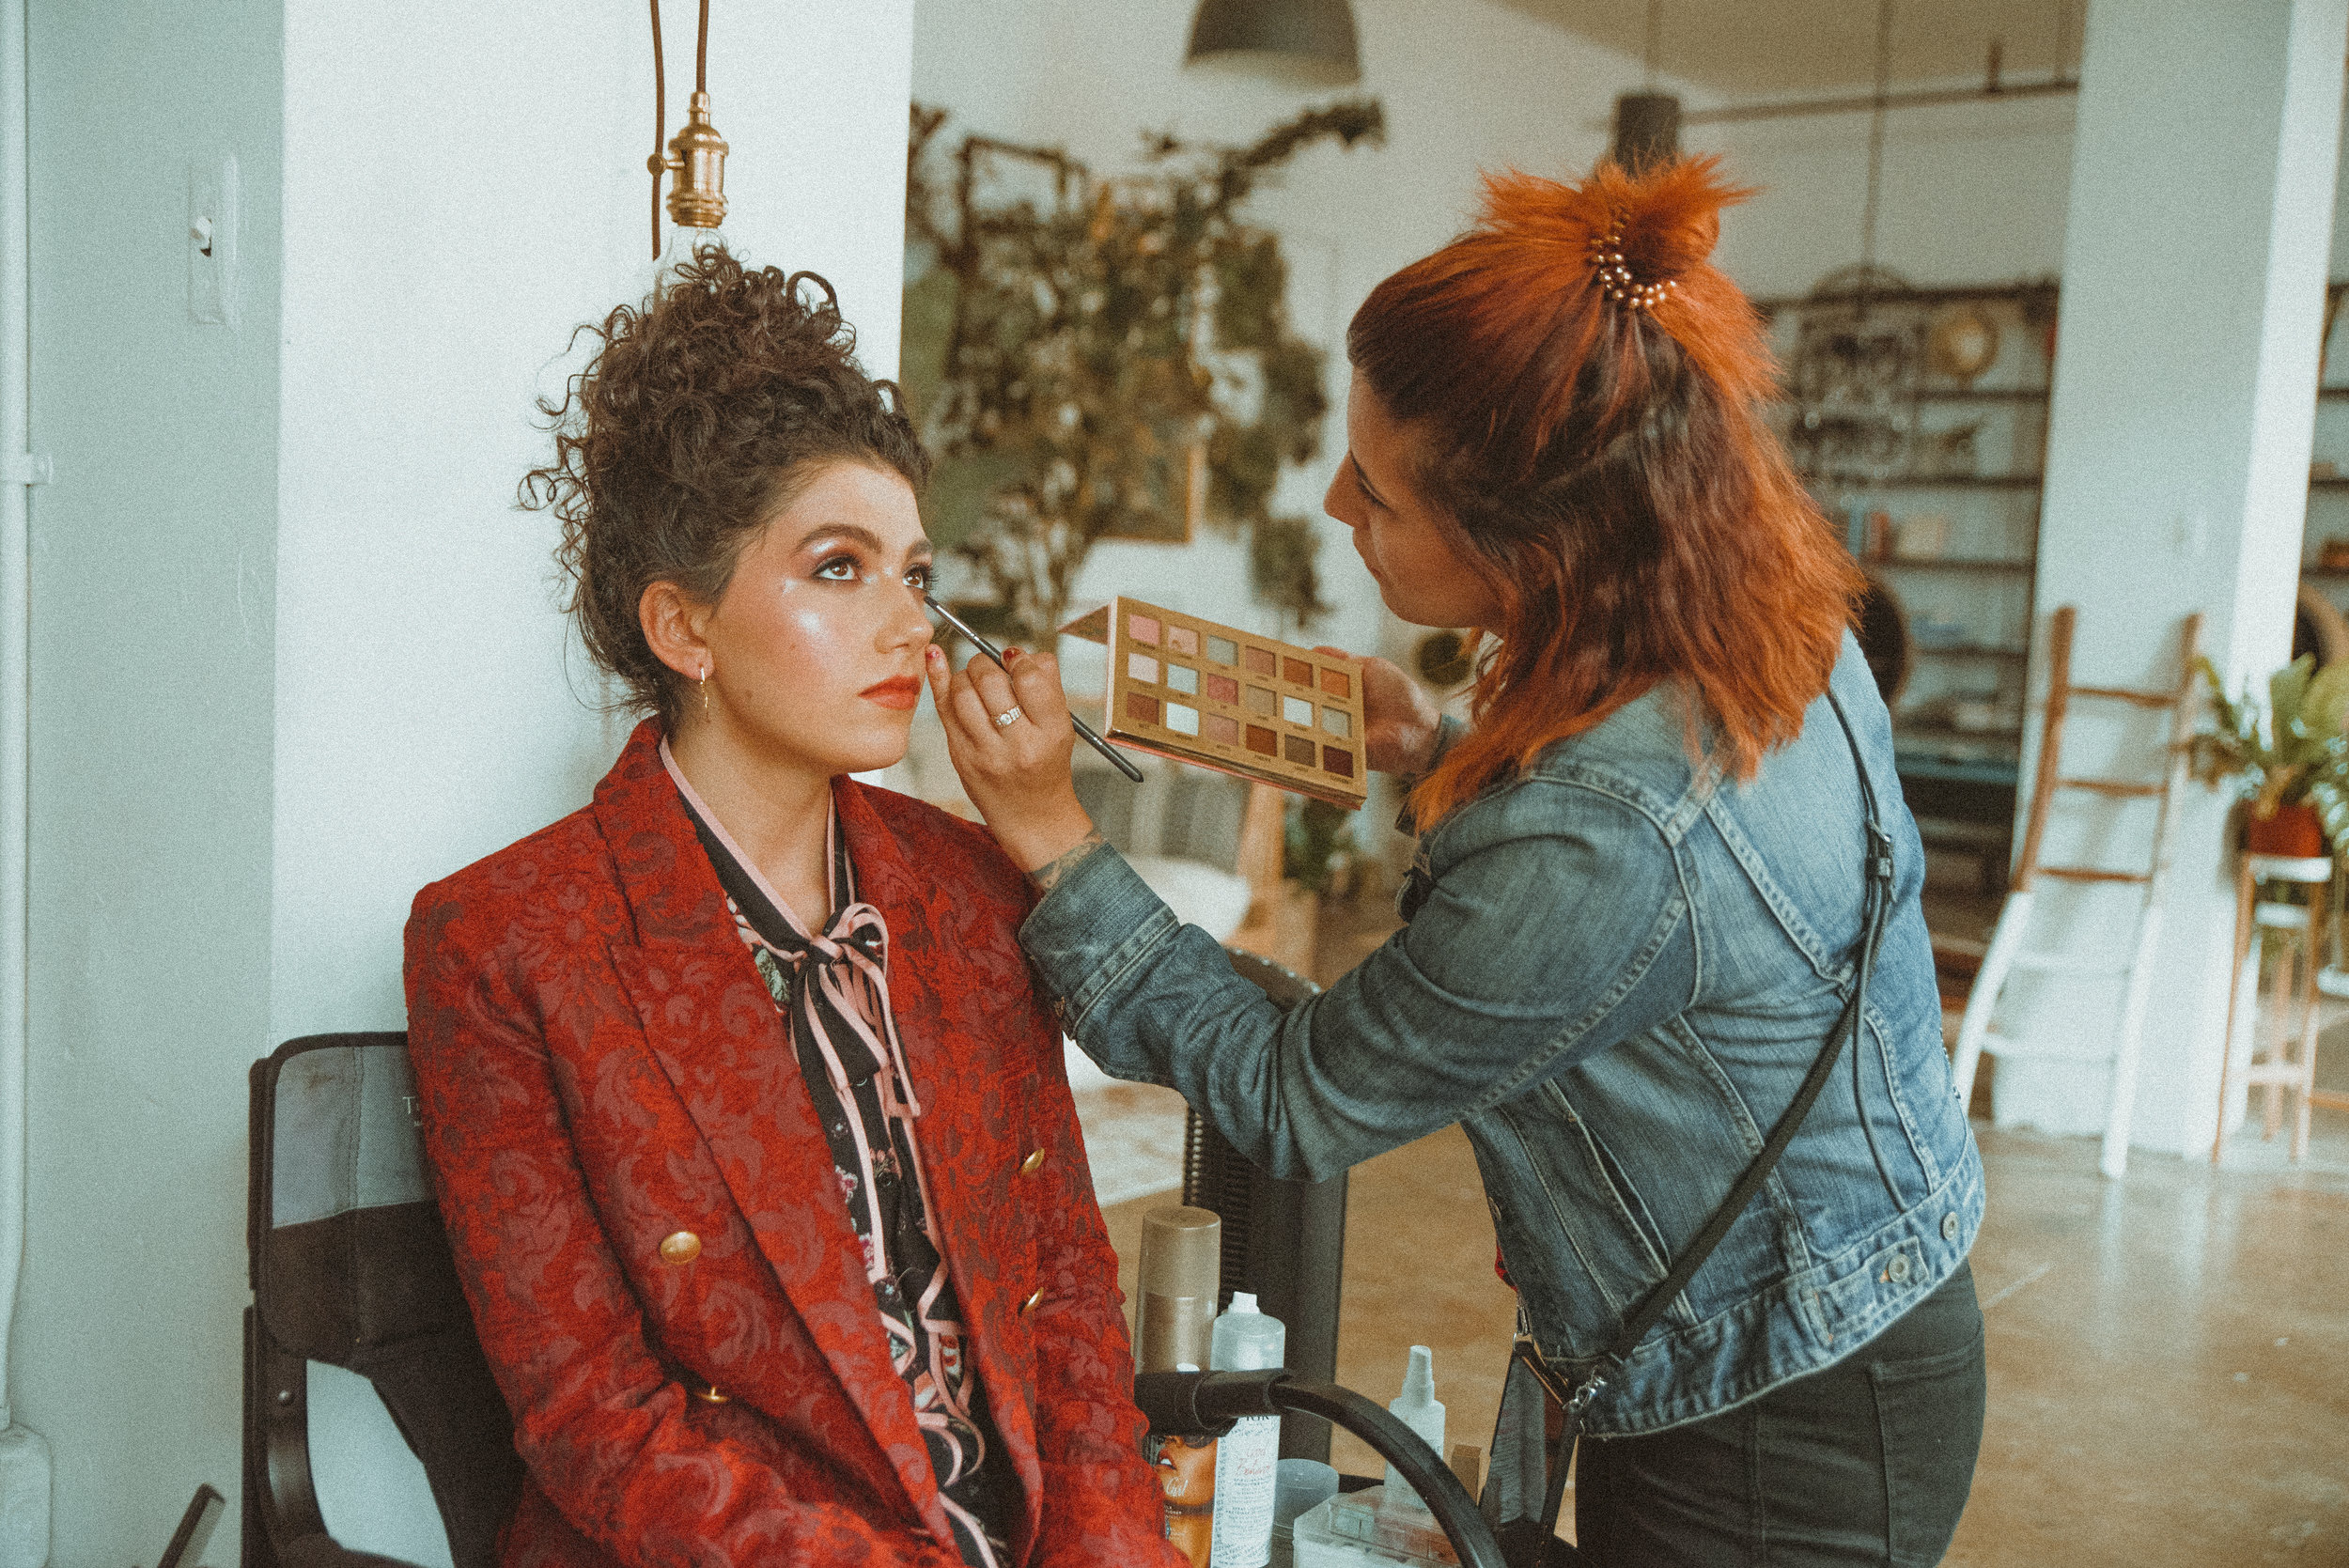 Image by Heather Koepp Photography | Cici Andersen applying makeup on a photoshoot for Saturne Magazine featuring Caroline Romano